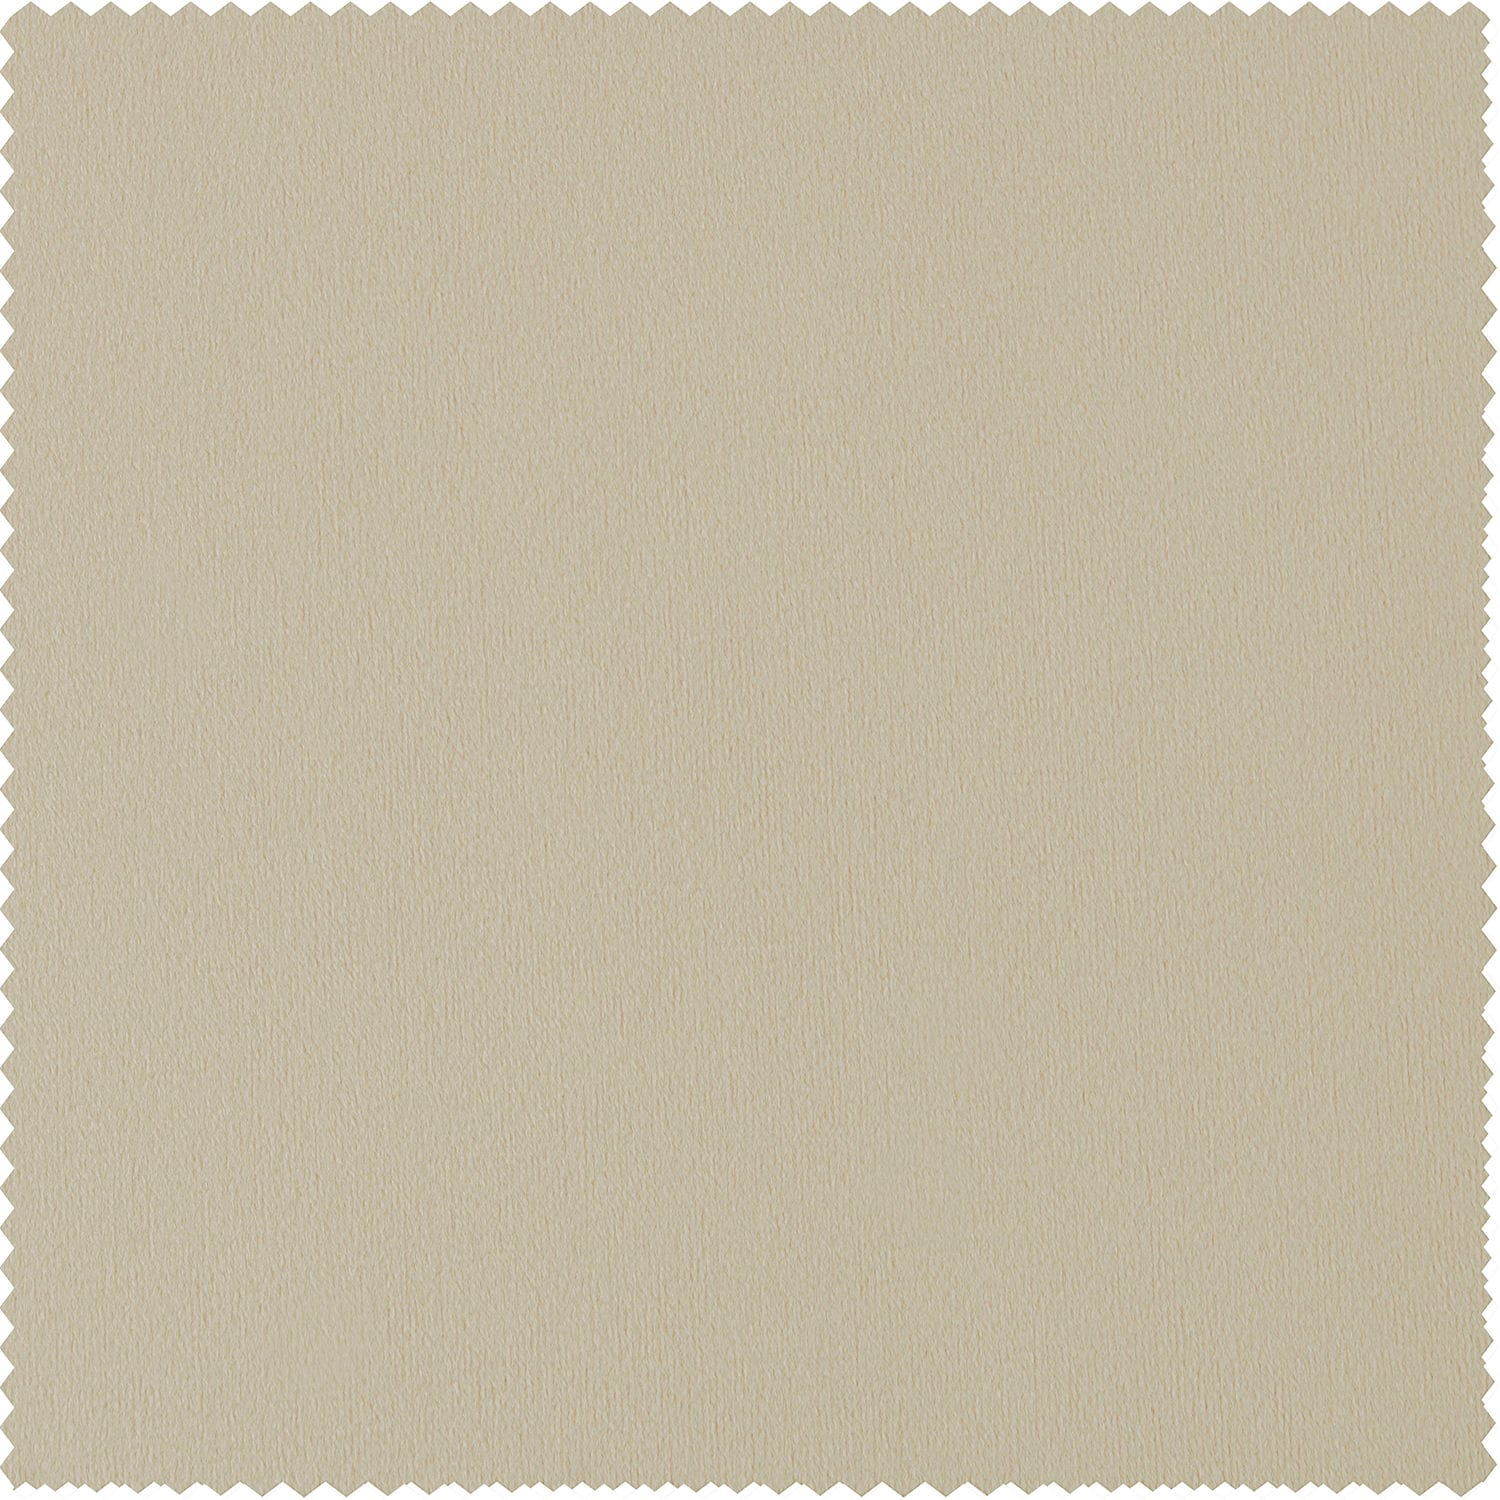 Signature Ivory Blackout Velvet Fabric